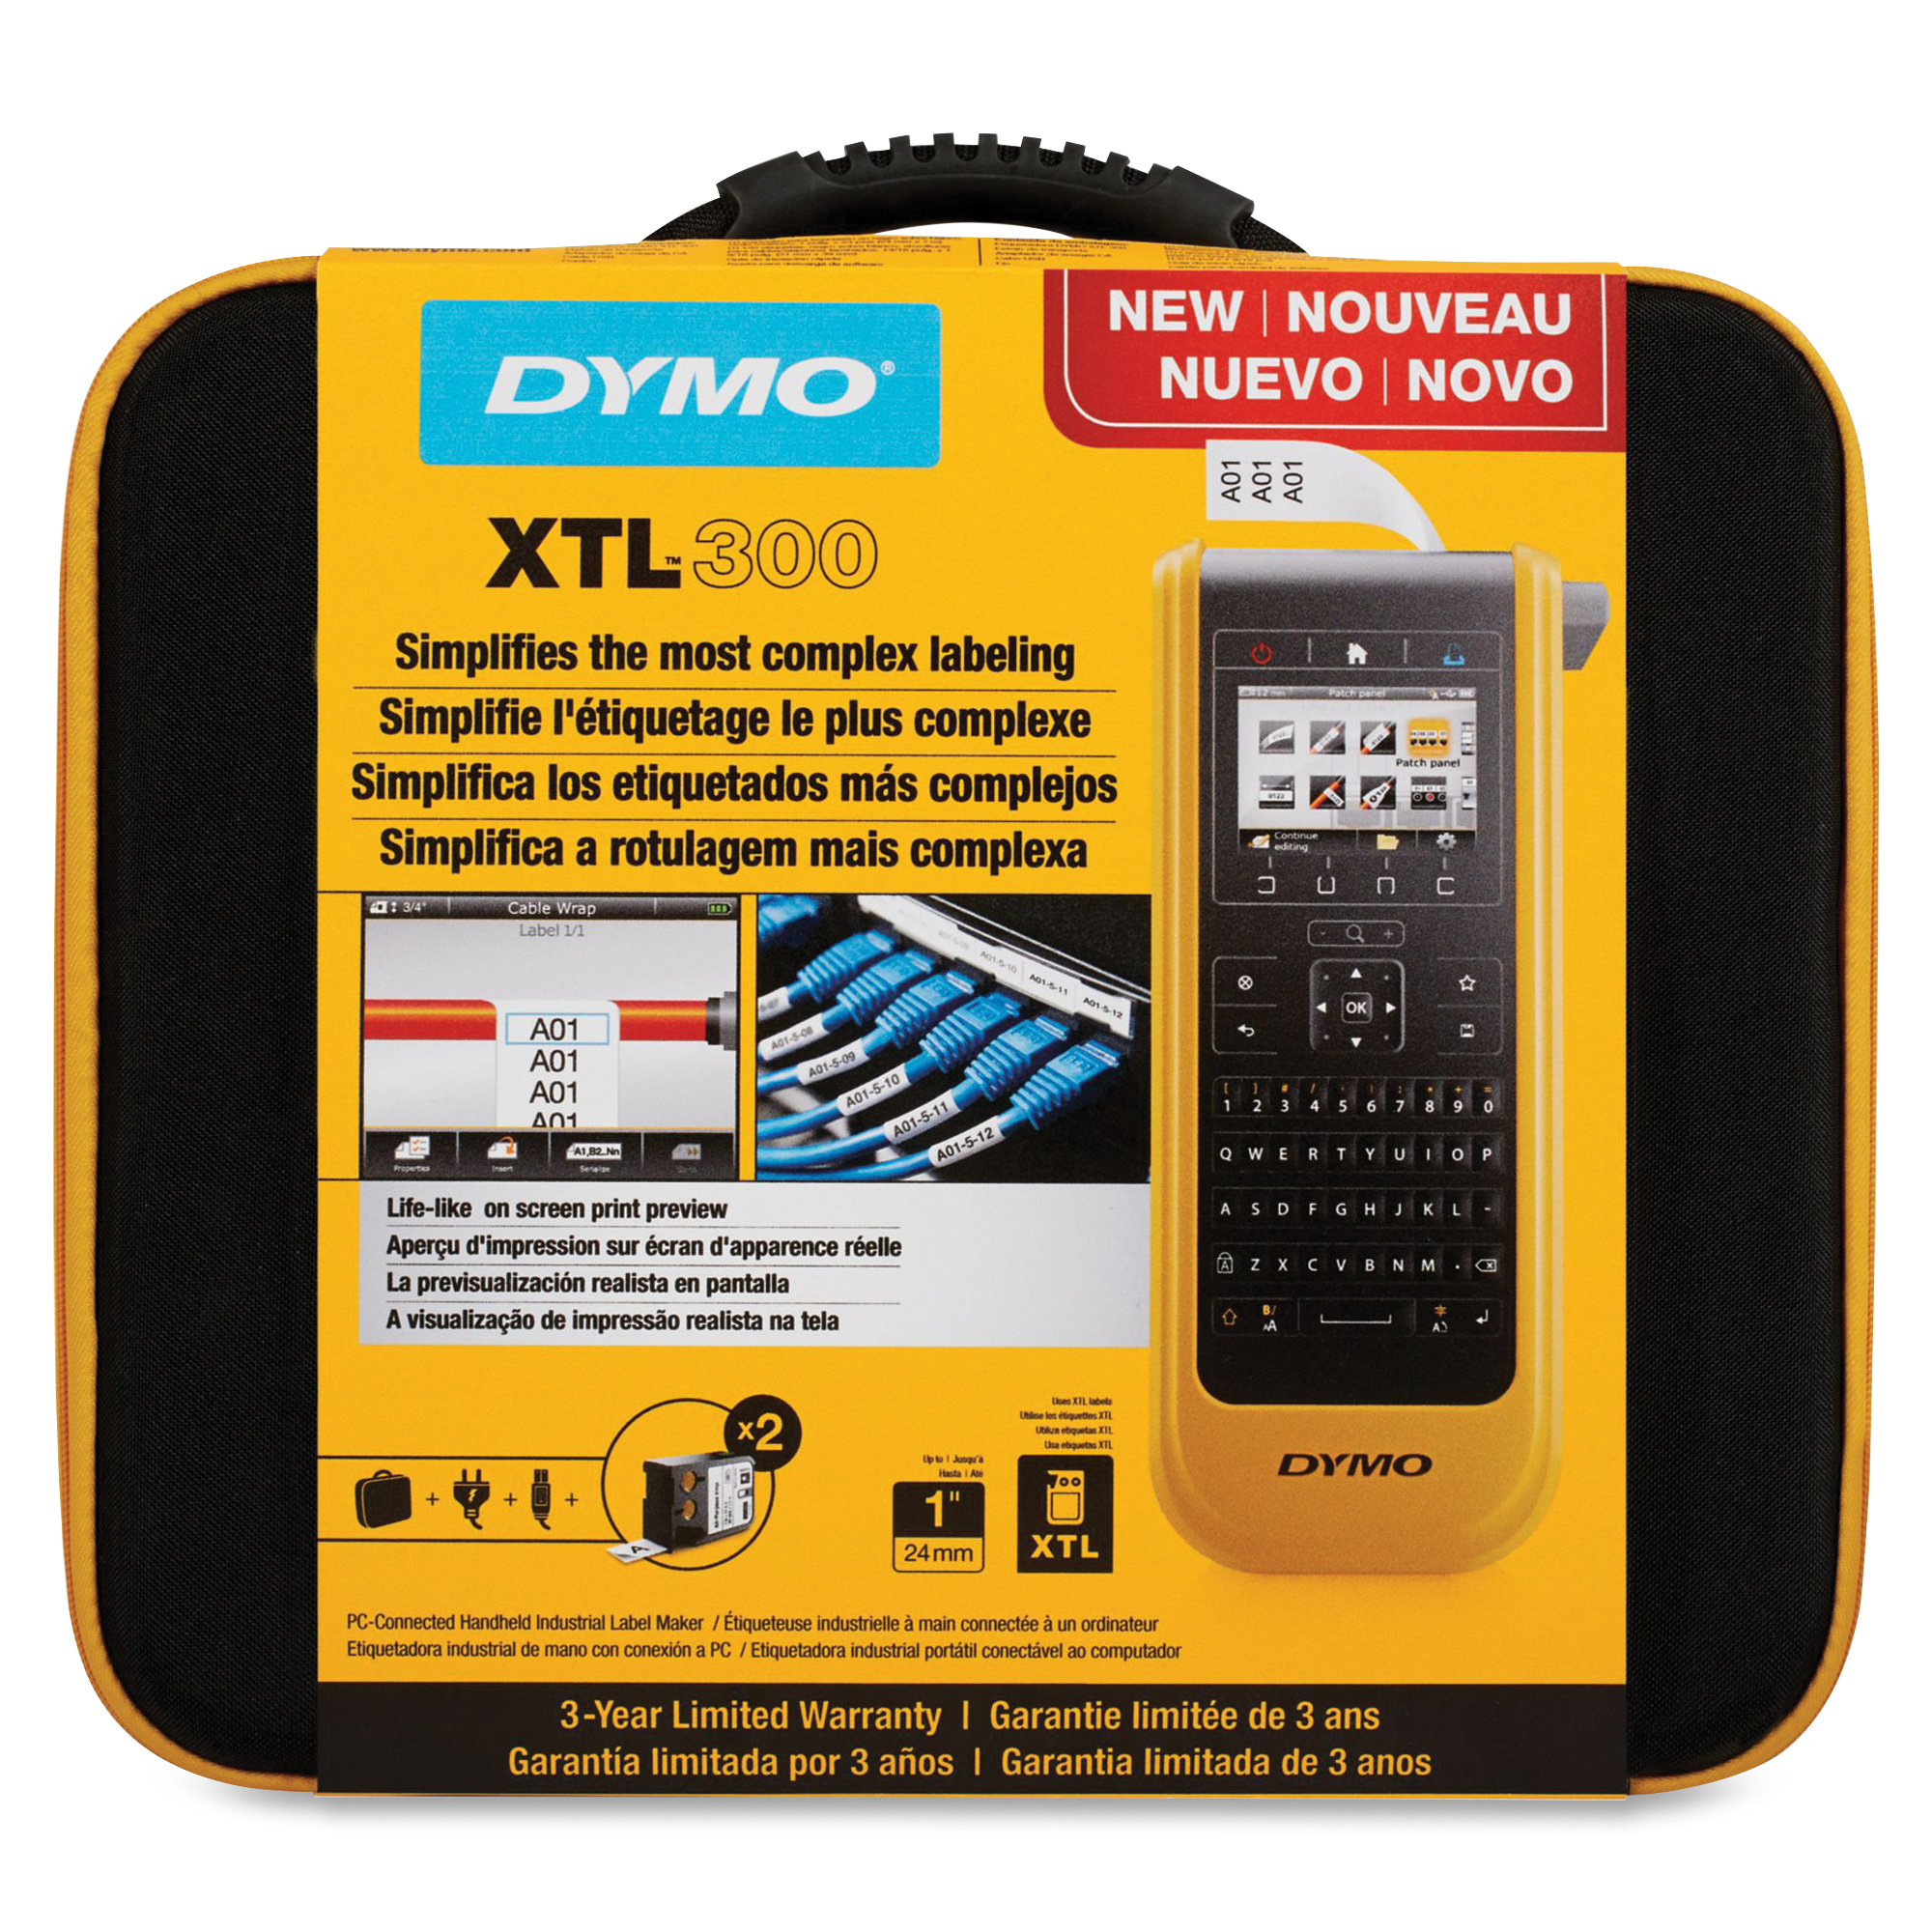 Dymo XTL 300 Label Maker Kit - 1868814